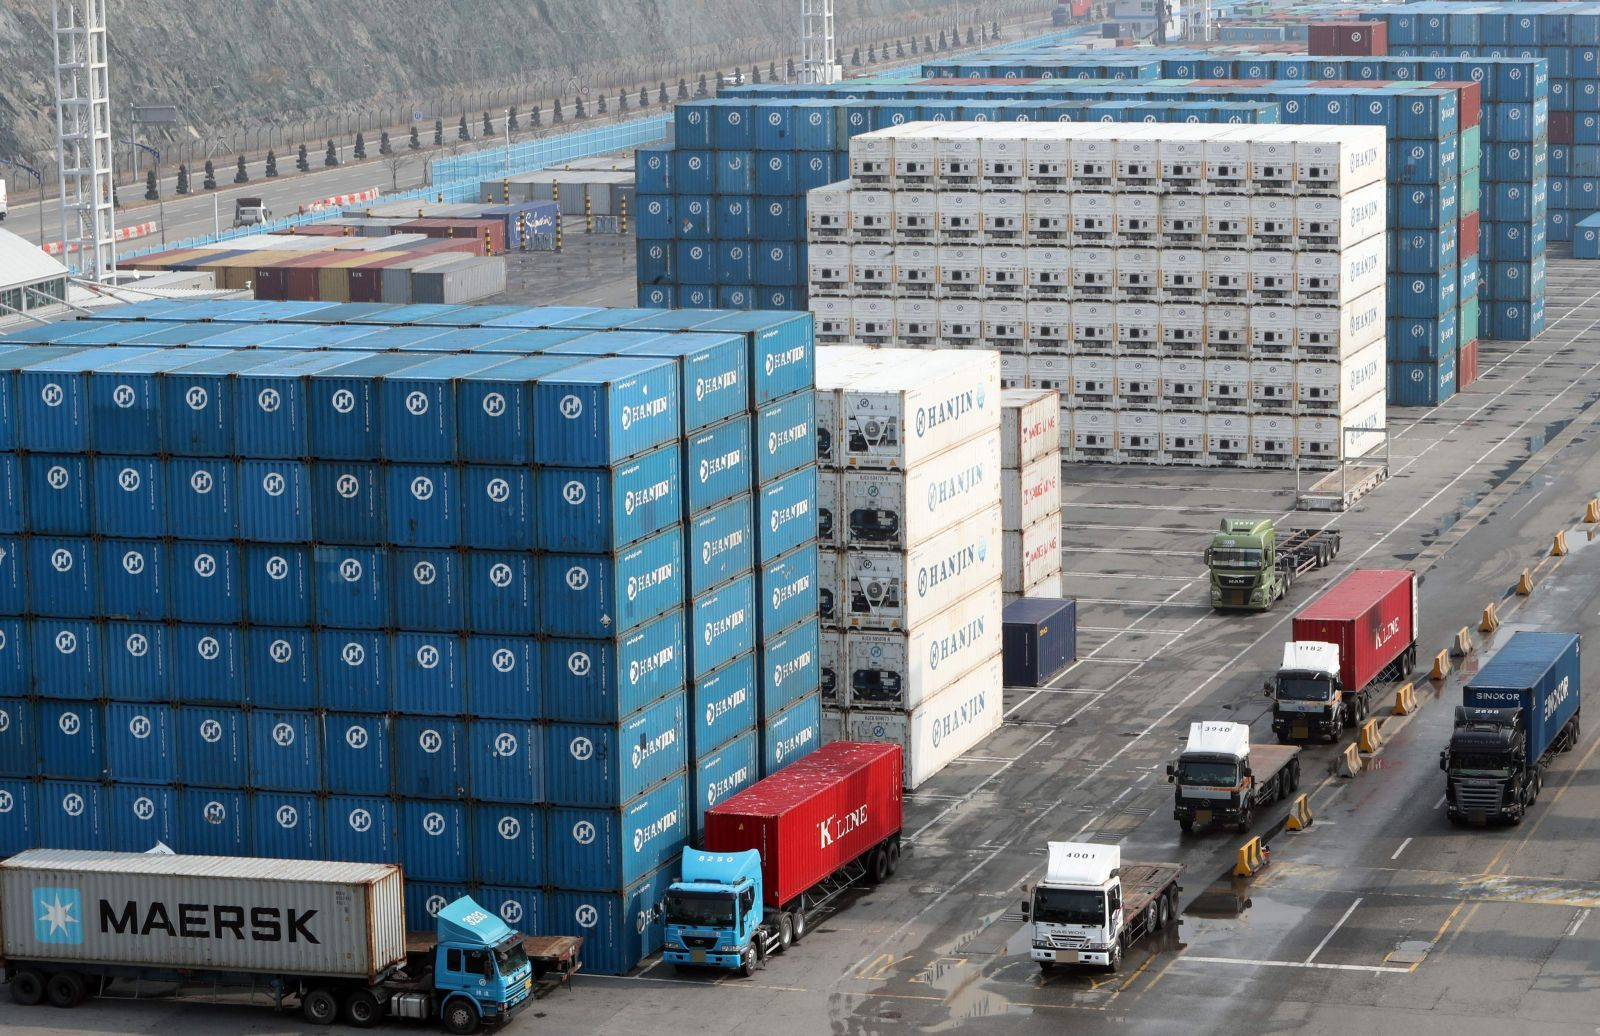 Trade containers stacked at a South Korean port